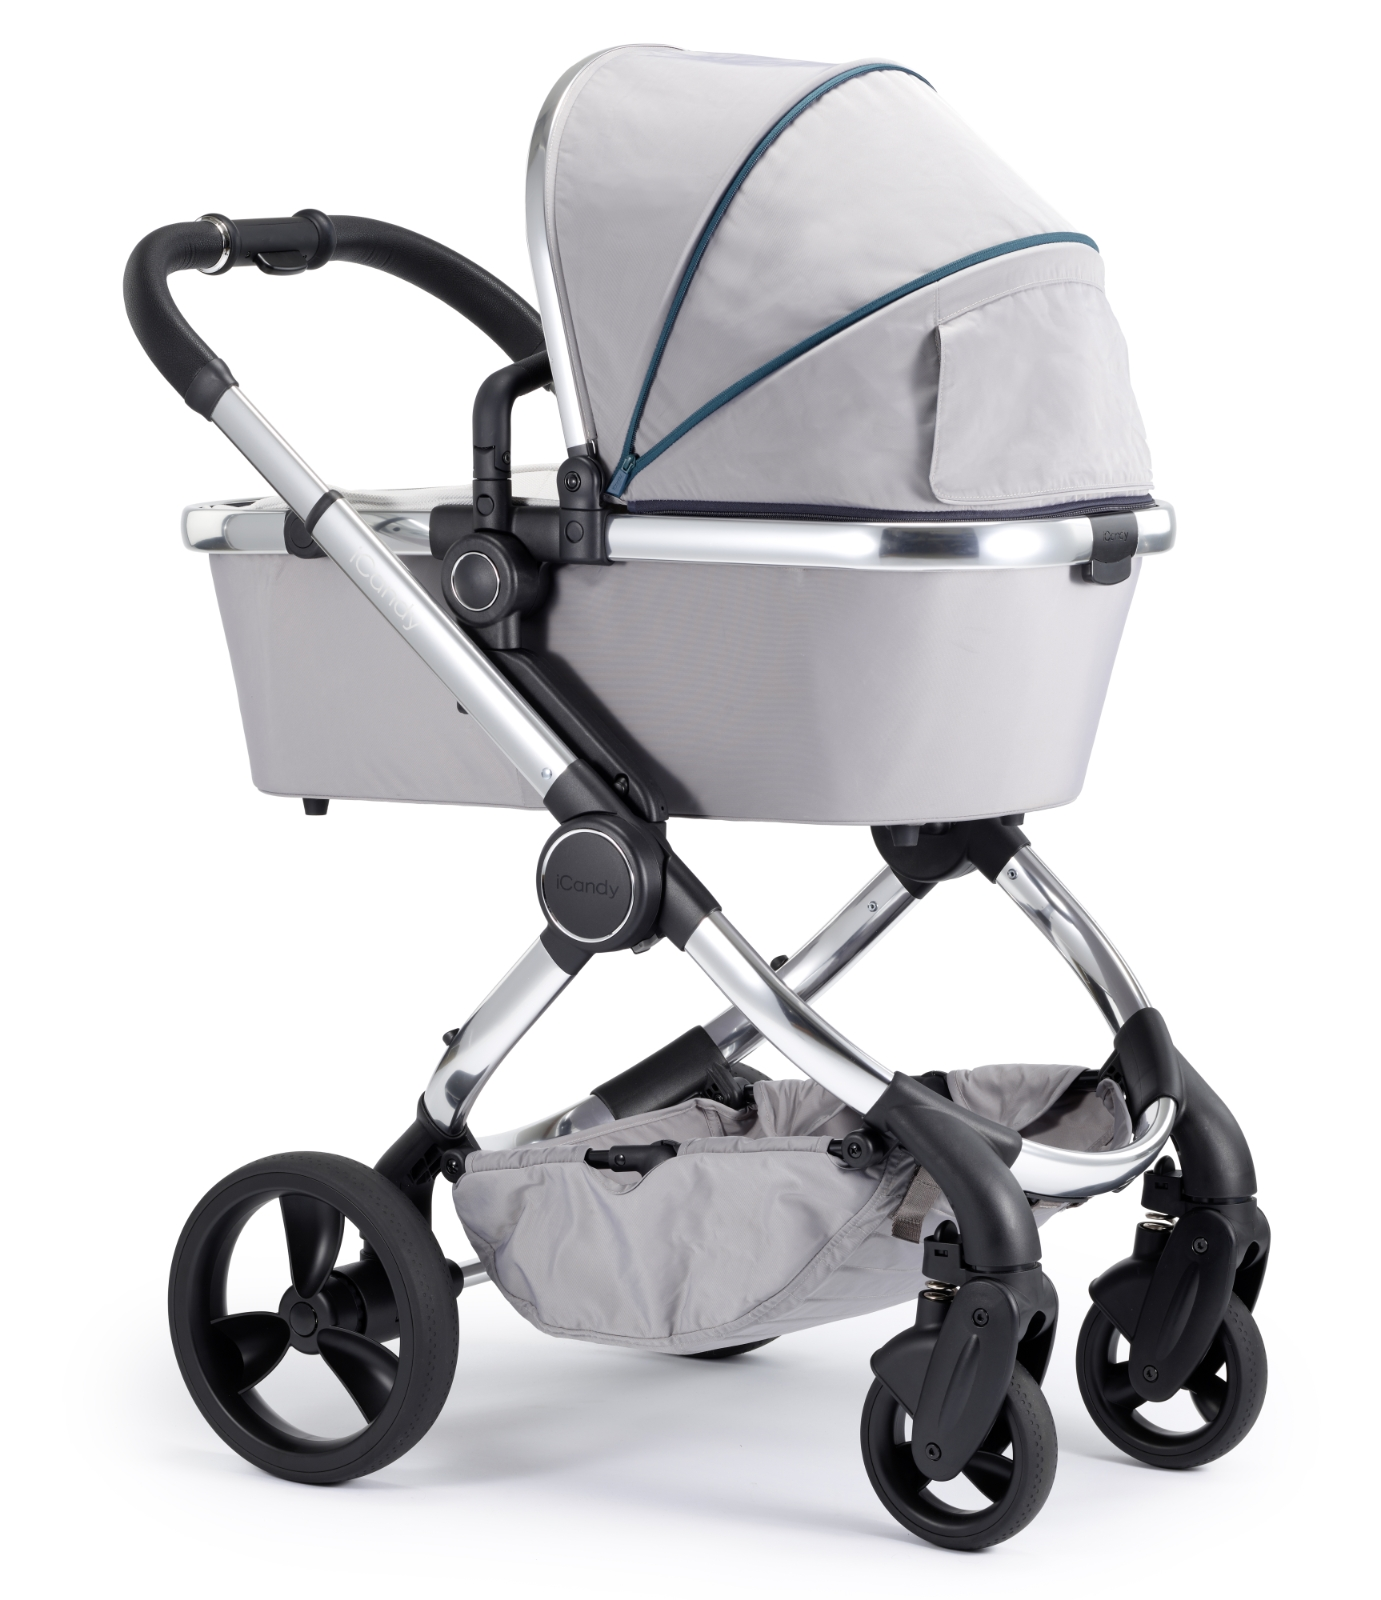 Joie Buggy Chrome Test Icandy Peach Chrome Pushchair And Carrycot Dove Grey